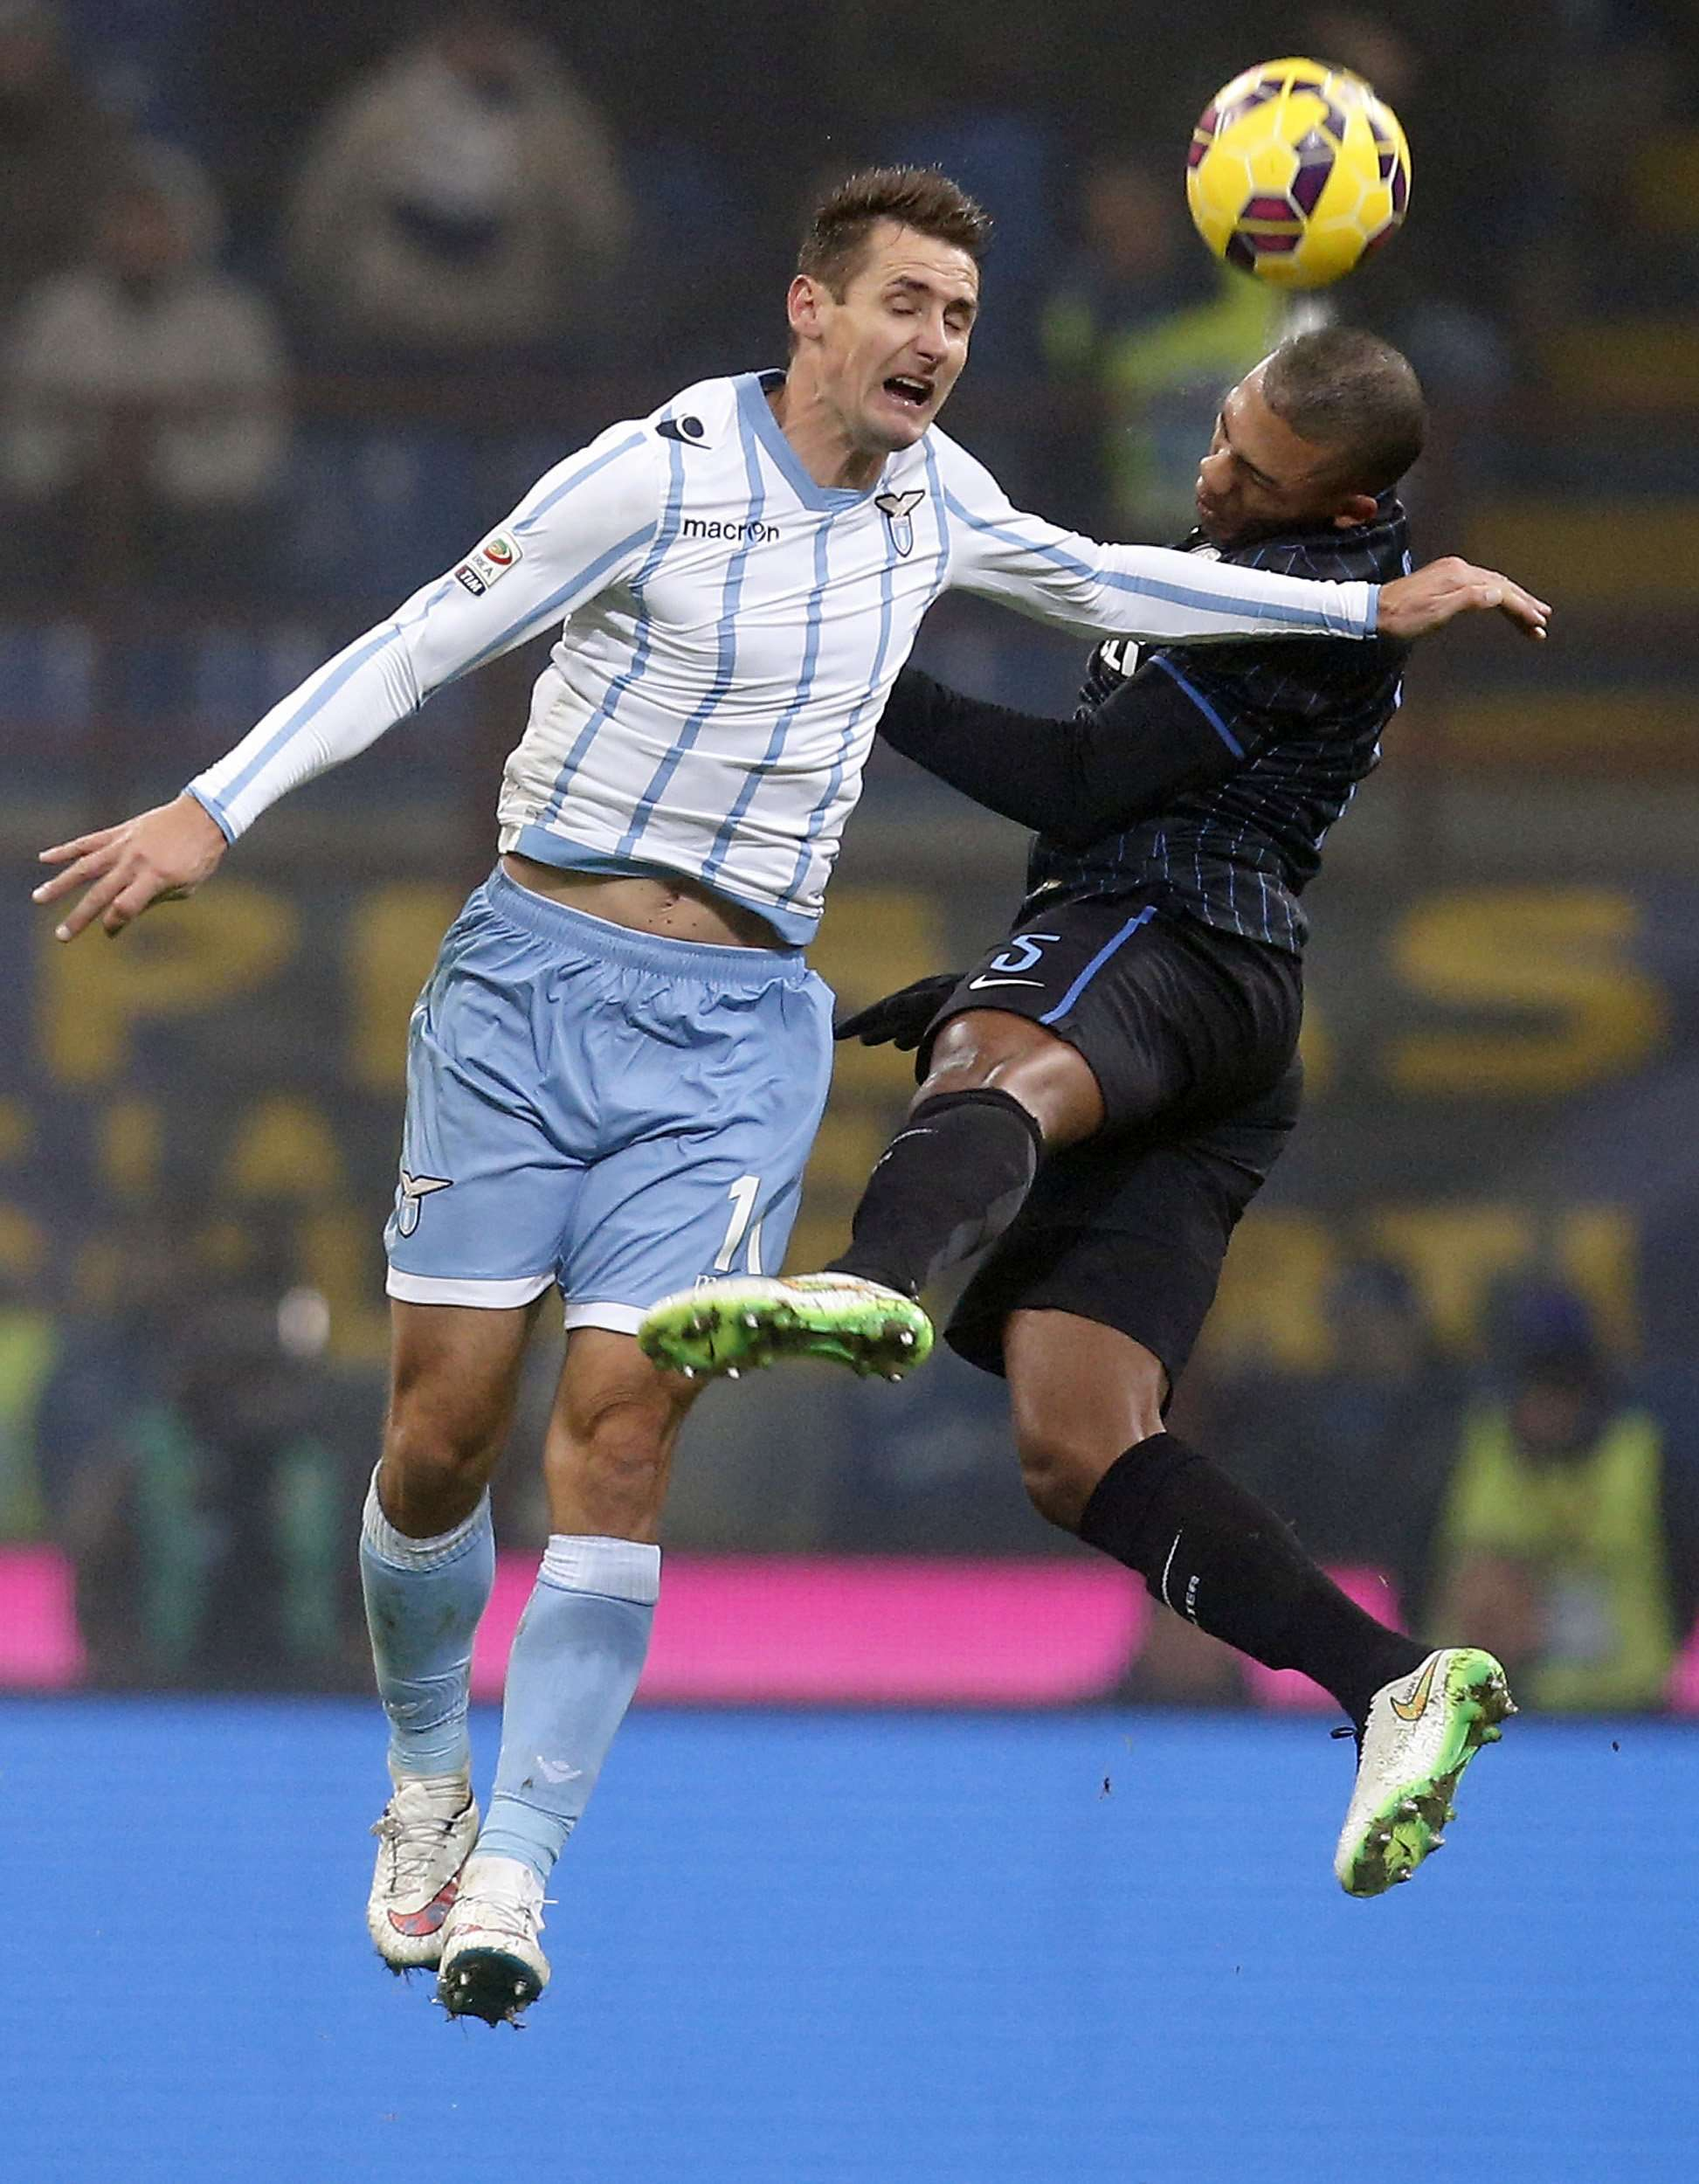 Inter Milan's Juan Jesus (R) jumps for the ball with Lazio's Miroslav Klose during their Italian Serie A soccer match at the San Siro stadium in Milan December 21, 2014. REUTERS/Alessandro Garofalo (ITALY - Tags: SPORT SOCCER) Foto: ALESSANDRO GAROFALO/REUTERS